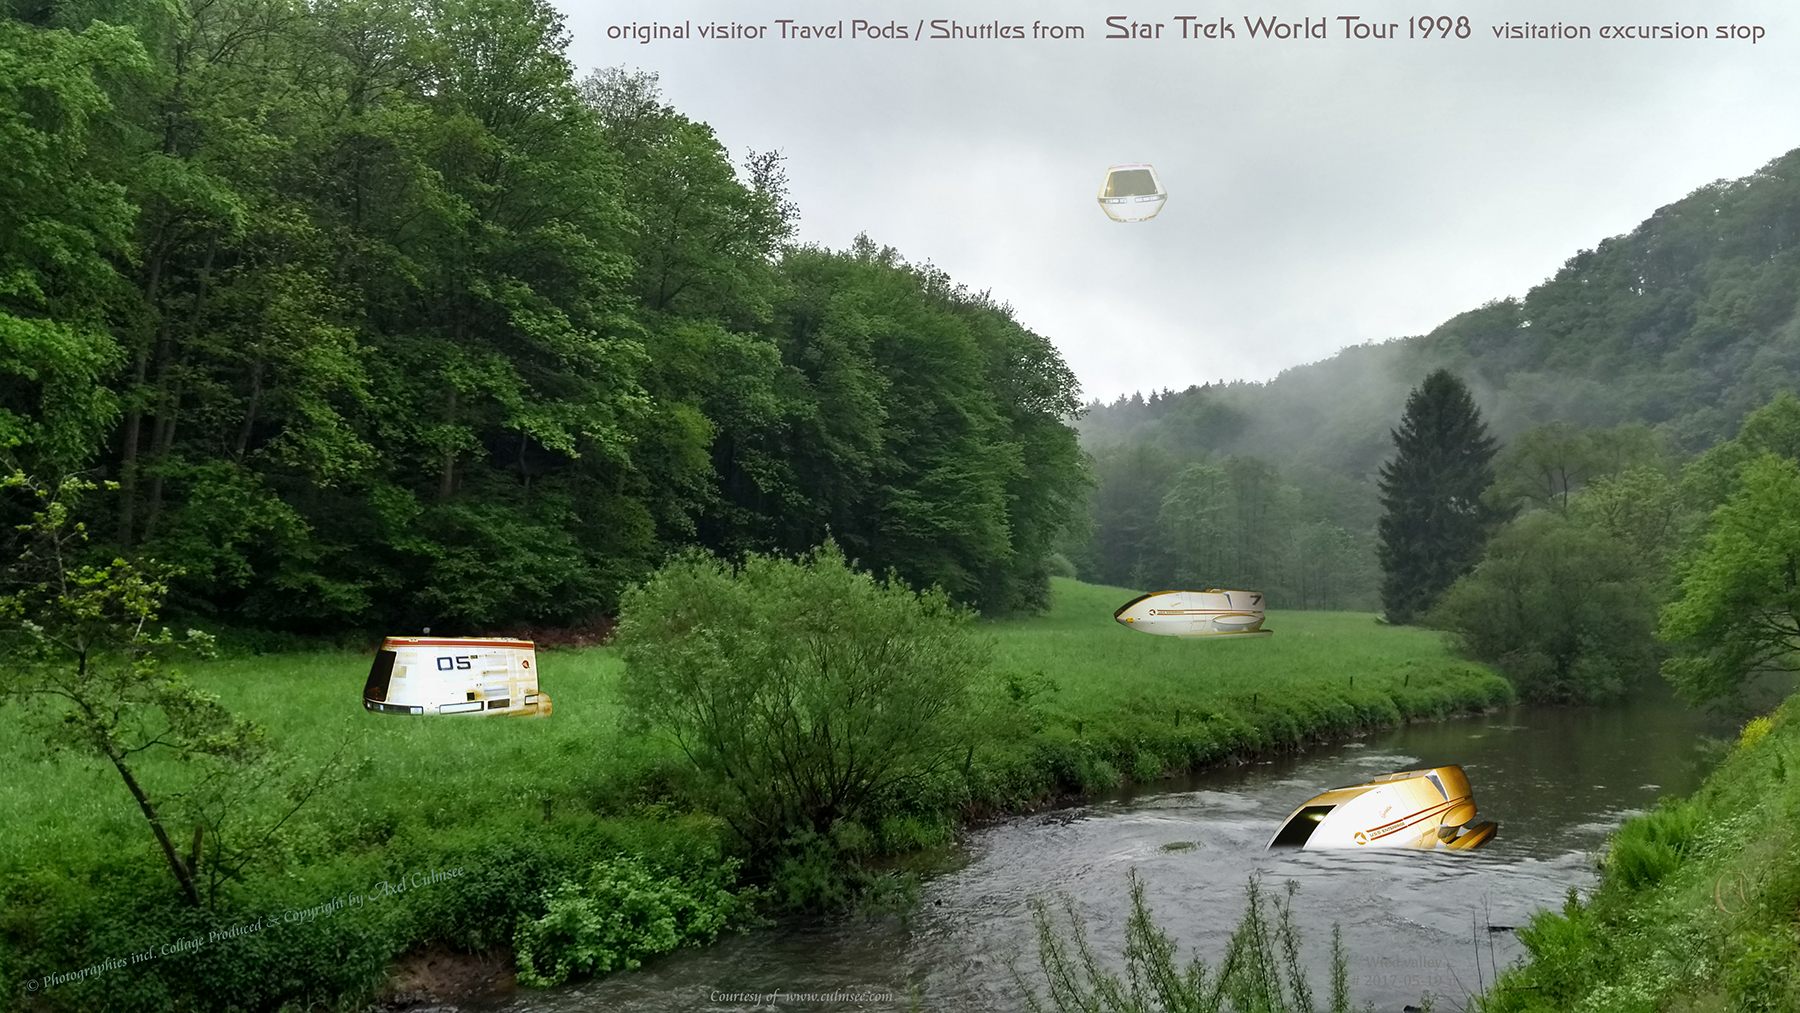 Shuttles Travel Pods timeline STWT 1998 Federation Science European Tour, Wied valley Western Forest